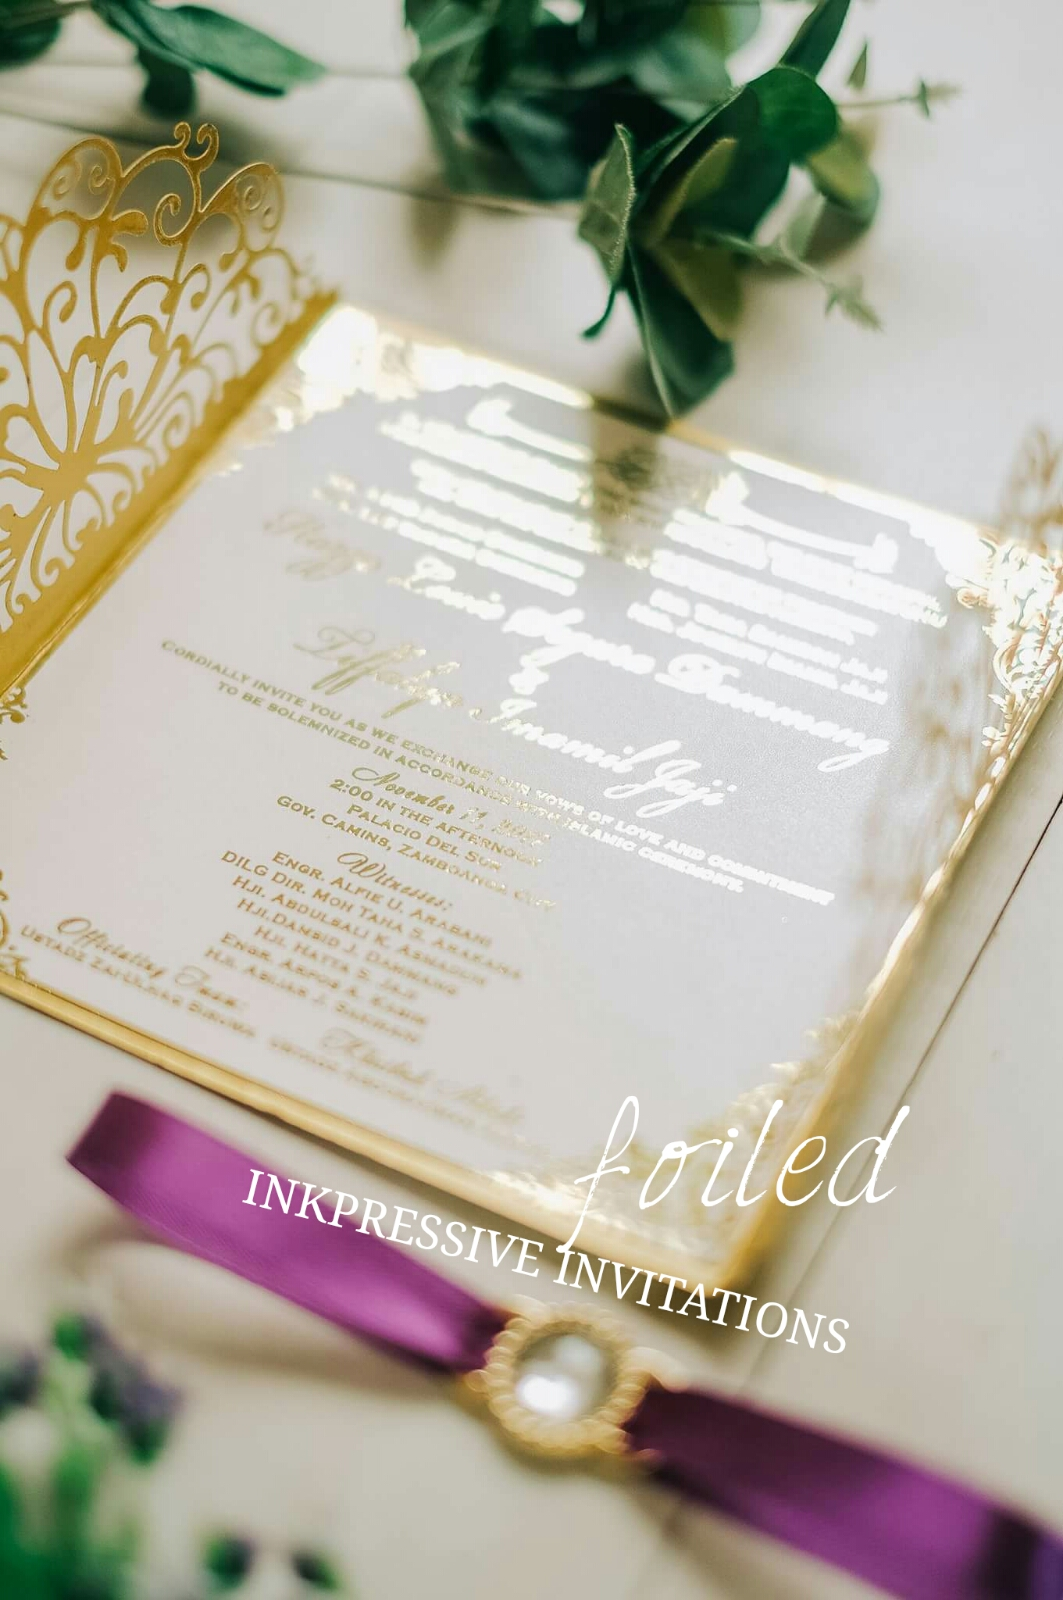 Foiledweddinginkpressiveg gold foiling on white special shimmery paper stopboris Gallery